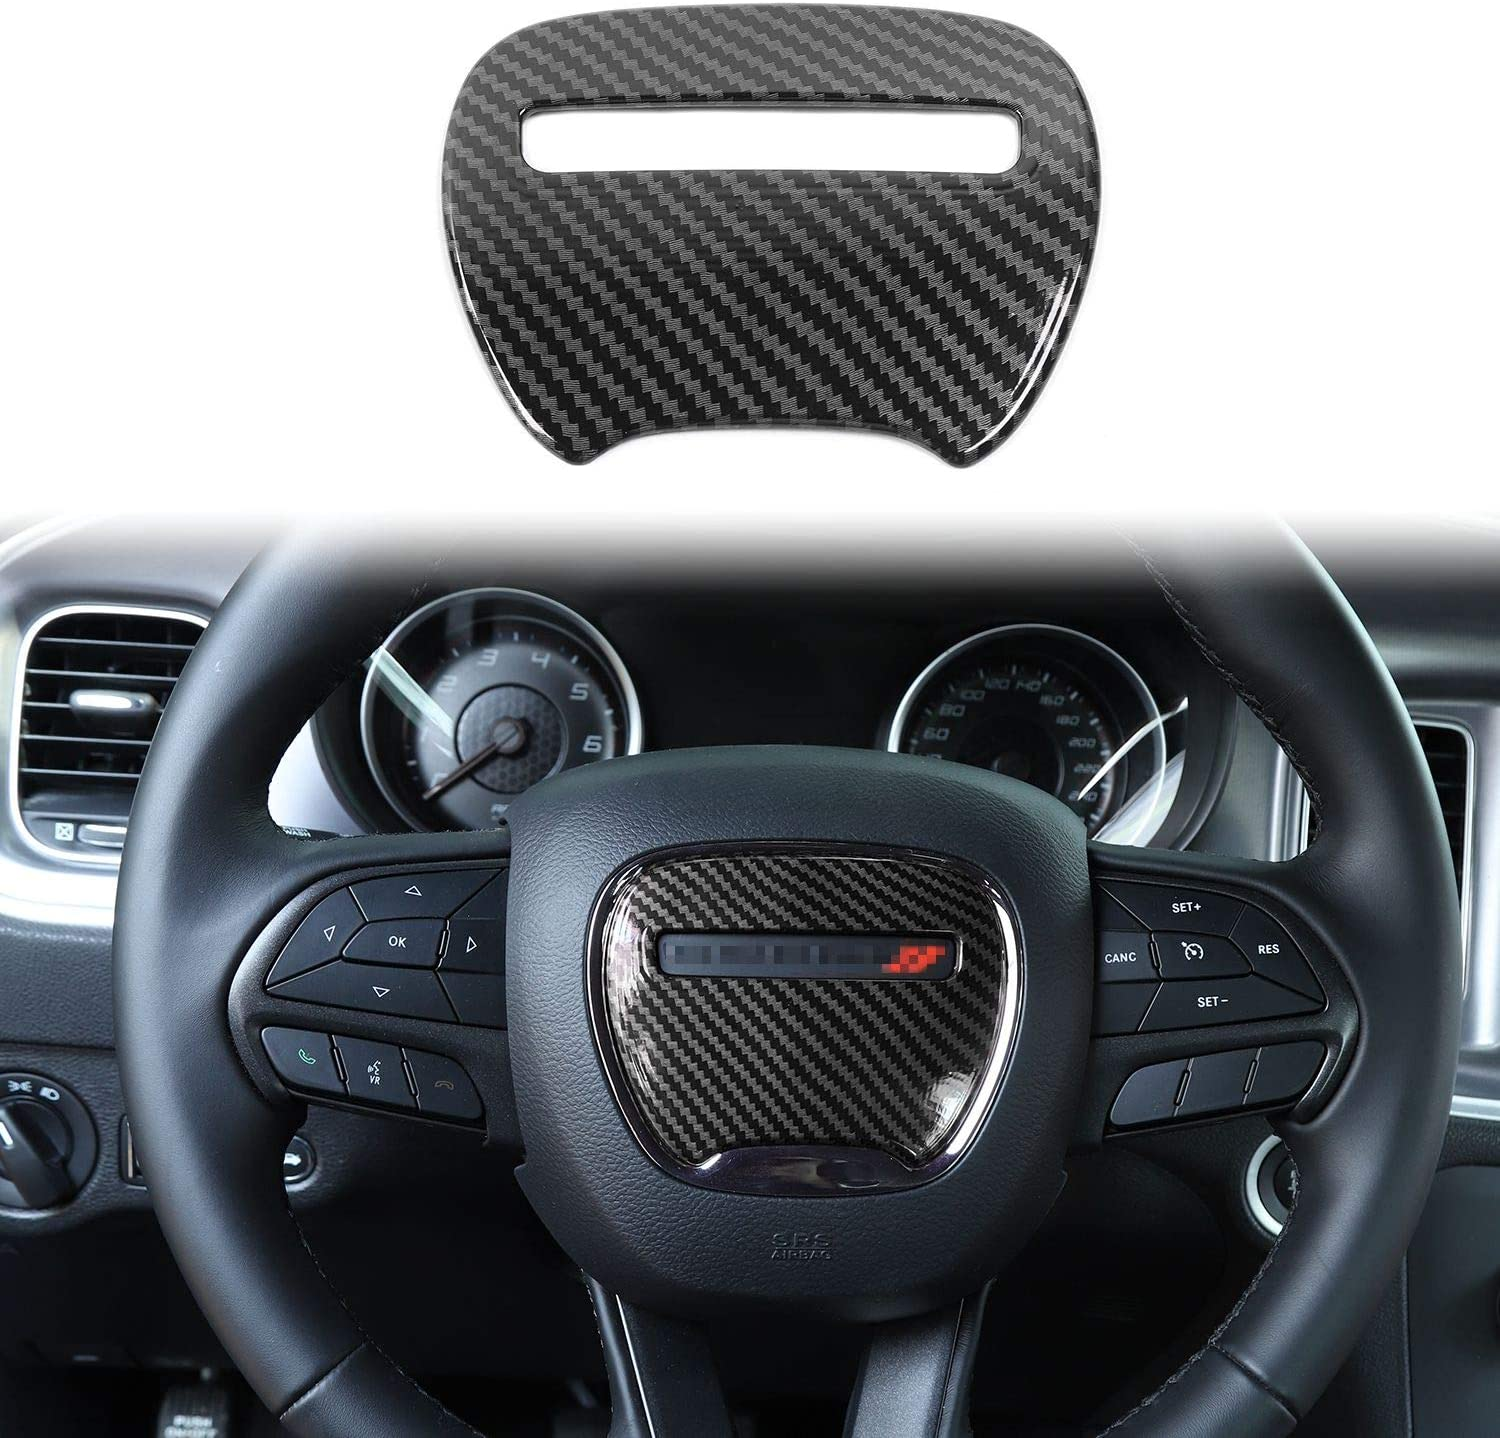 Voodonala for Charger Real Carbon Fiber Microphone Decorative Trim for 2015-2019 Dodge Charger 2pcs